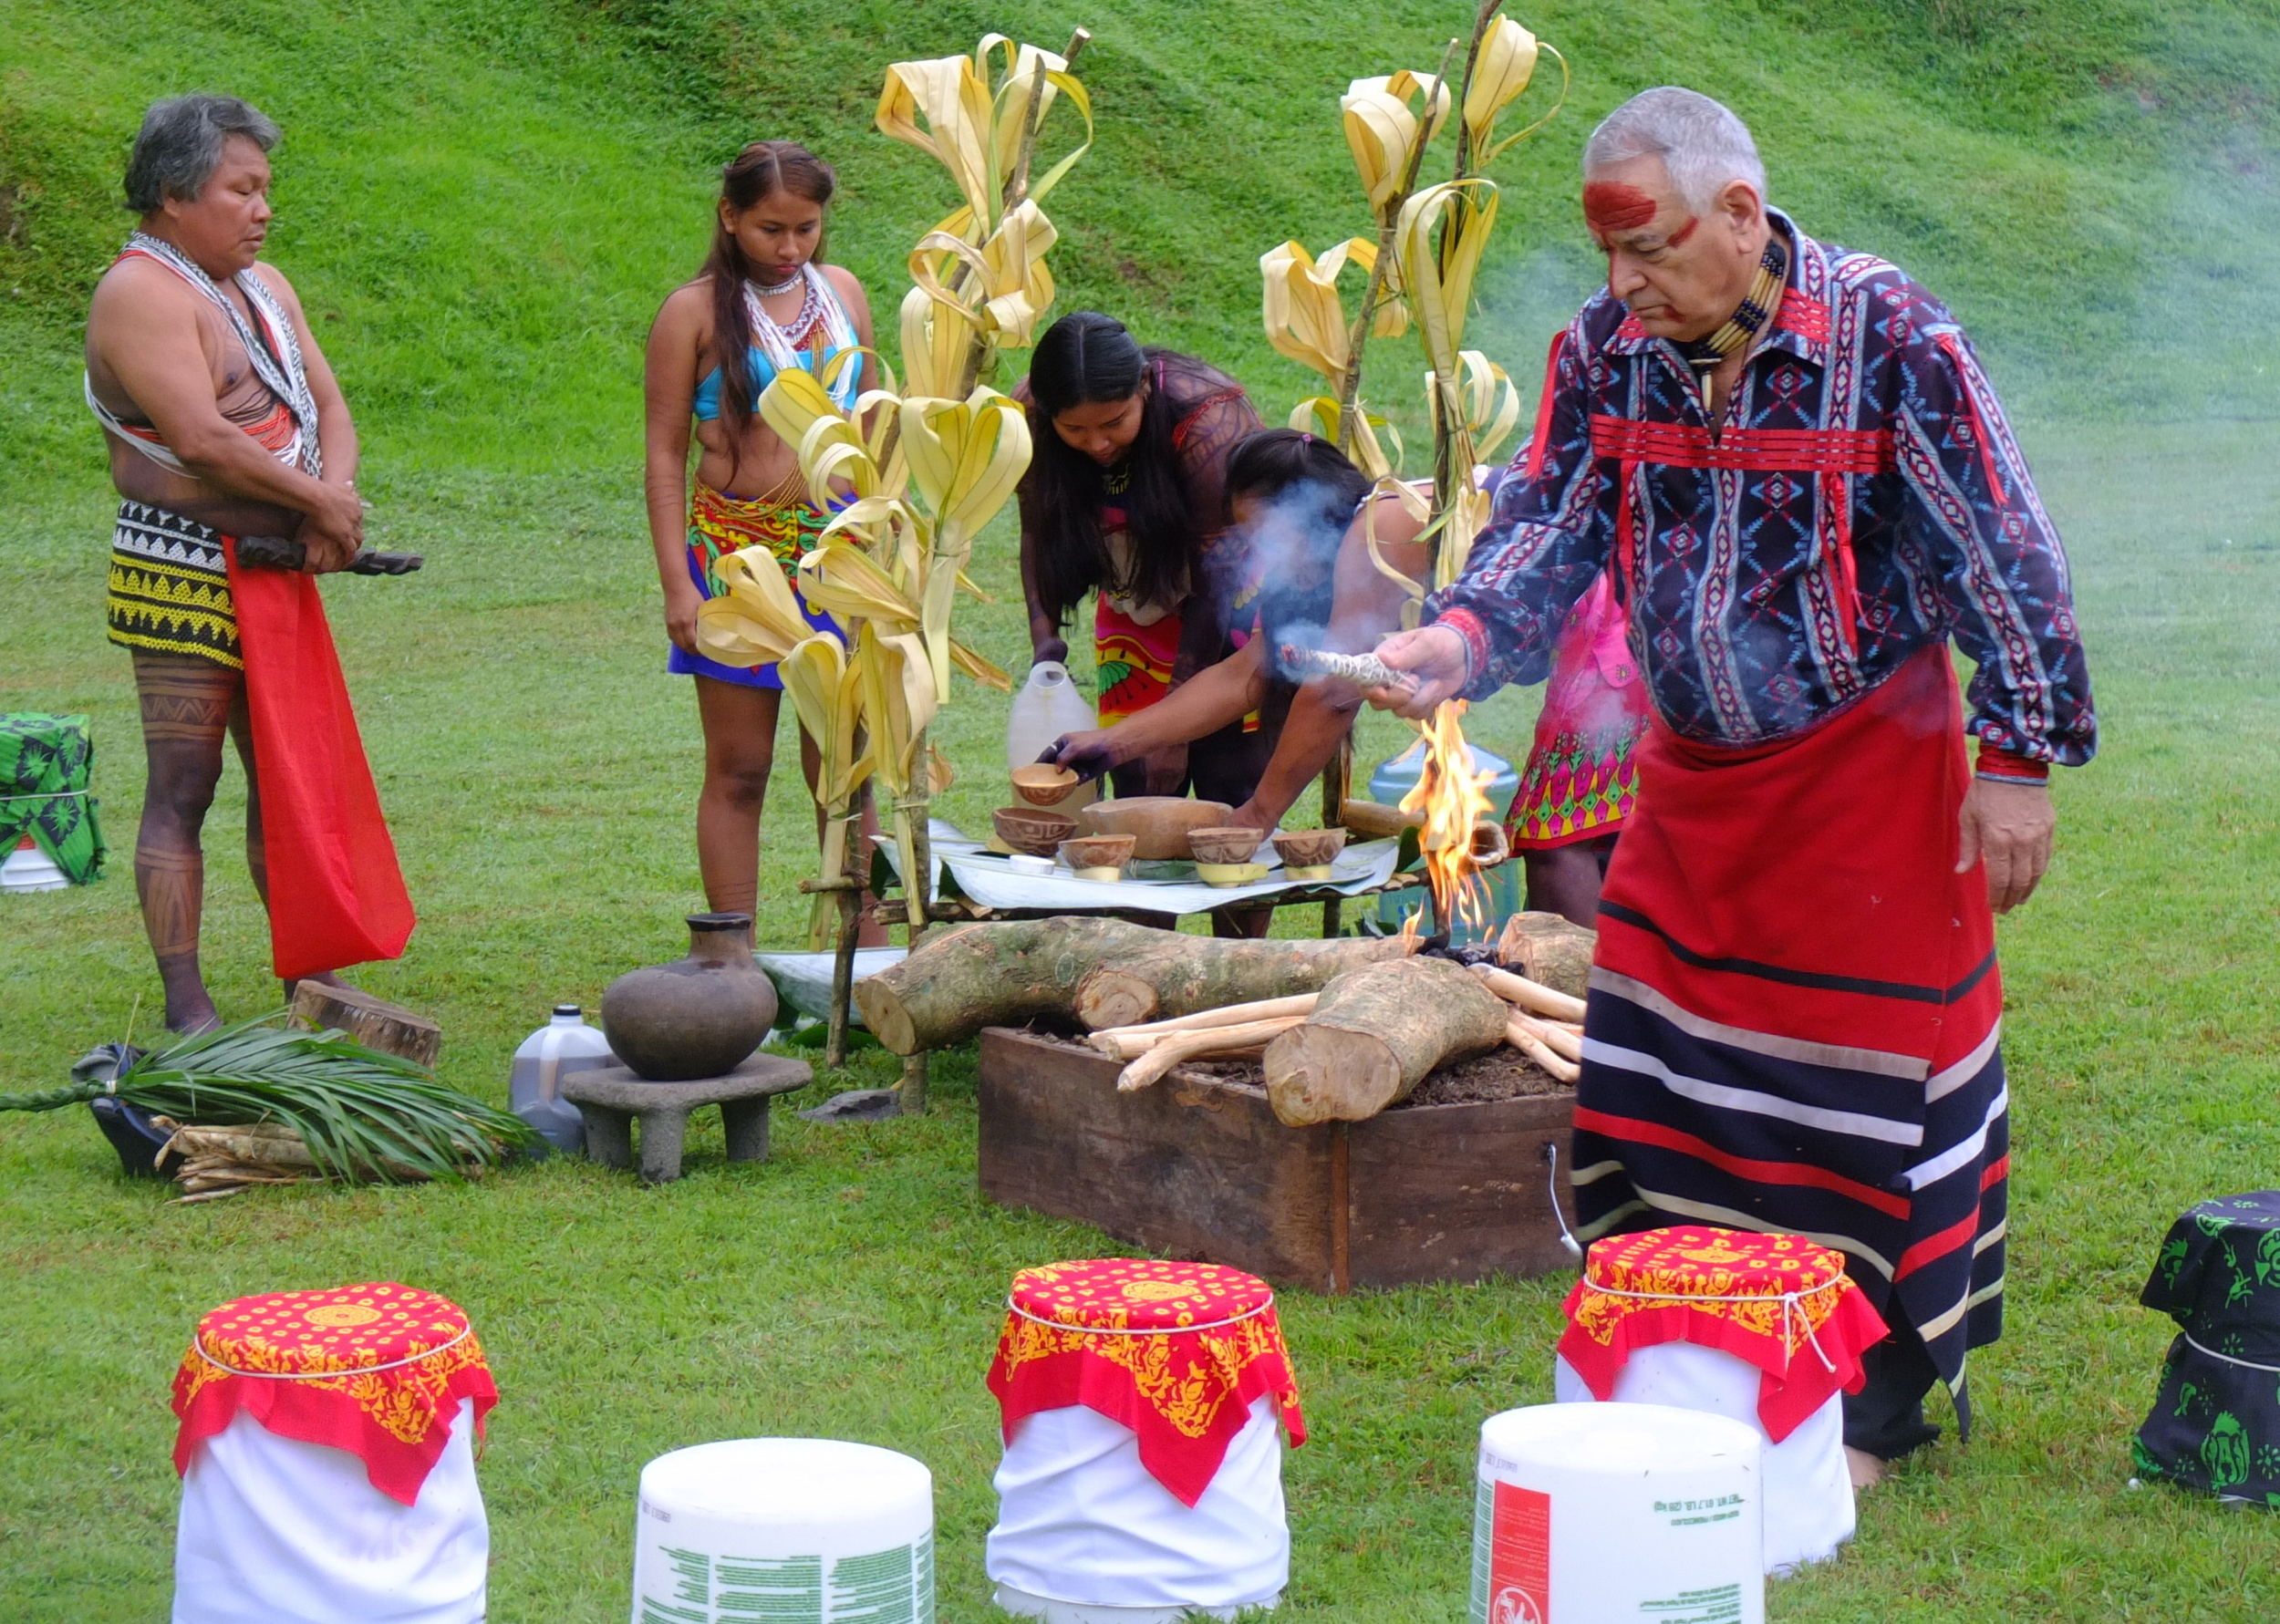 Four Worlds International Institute's Chief Phil Lane Jr. joins Embera Ceremony to bless new campus.